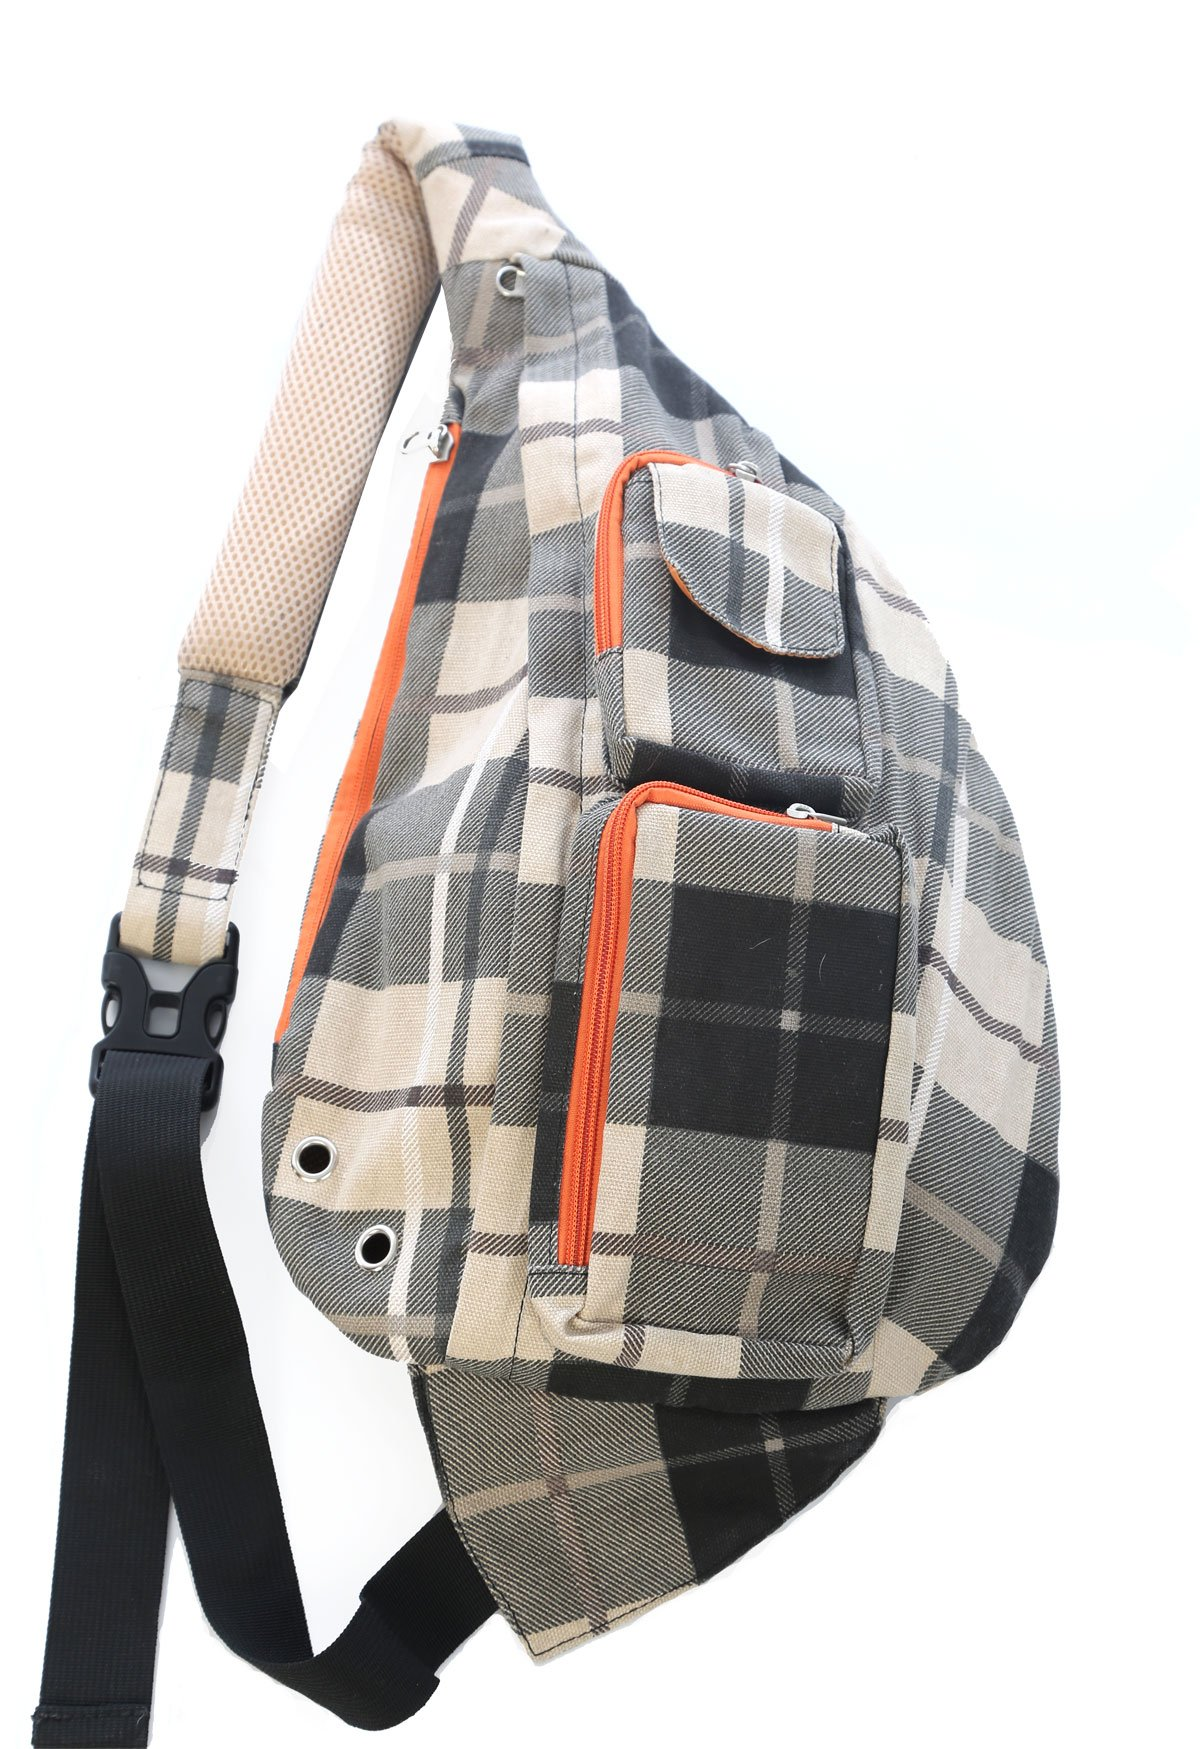 Meru Sling Backpack Bag - Small Single Strap Crossbody Pack for Women and Men (Plaid)